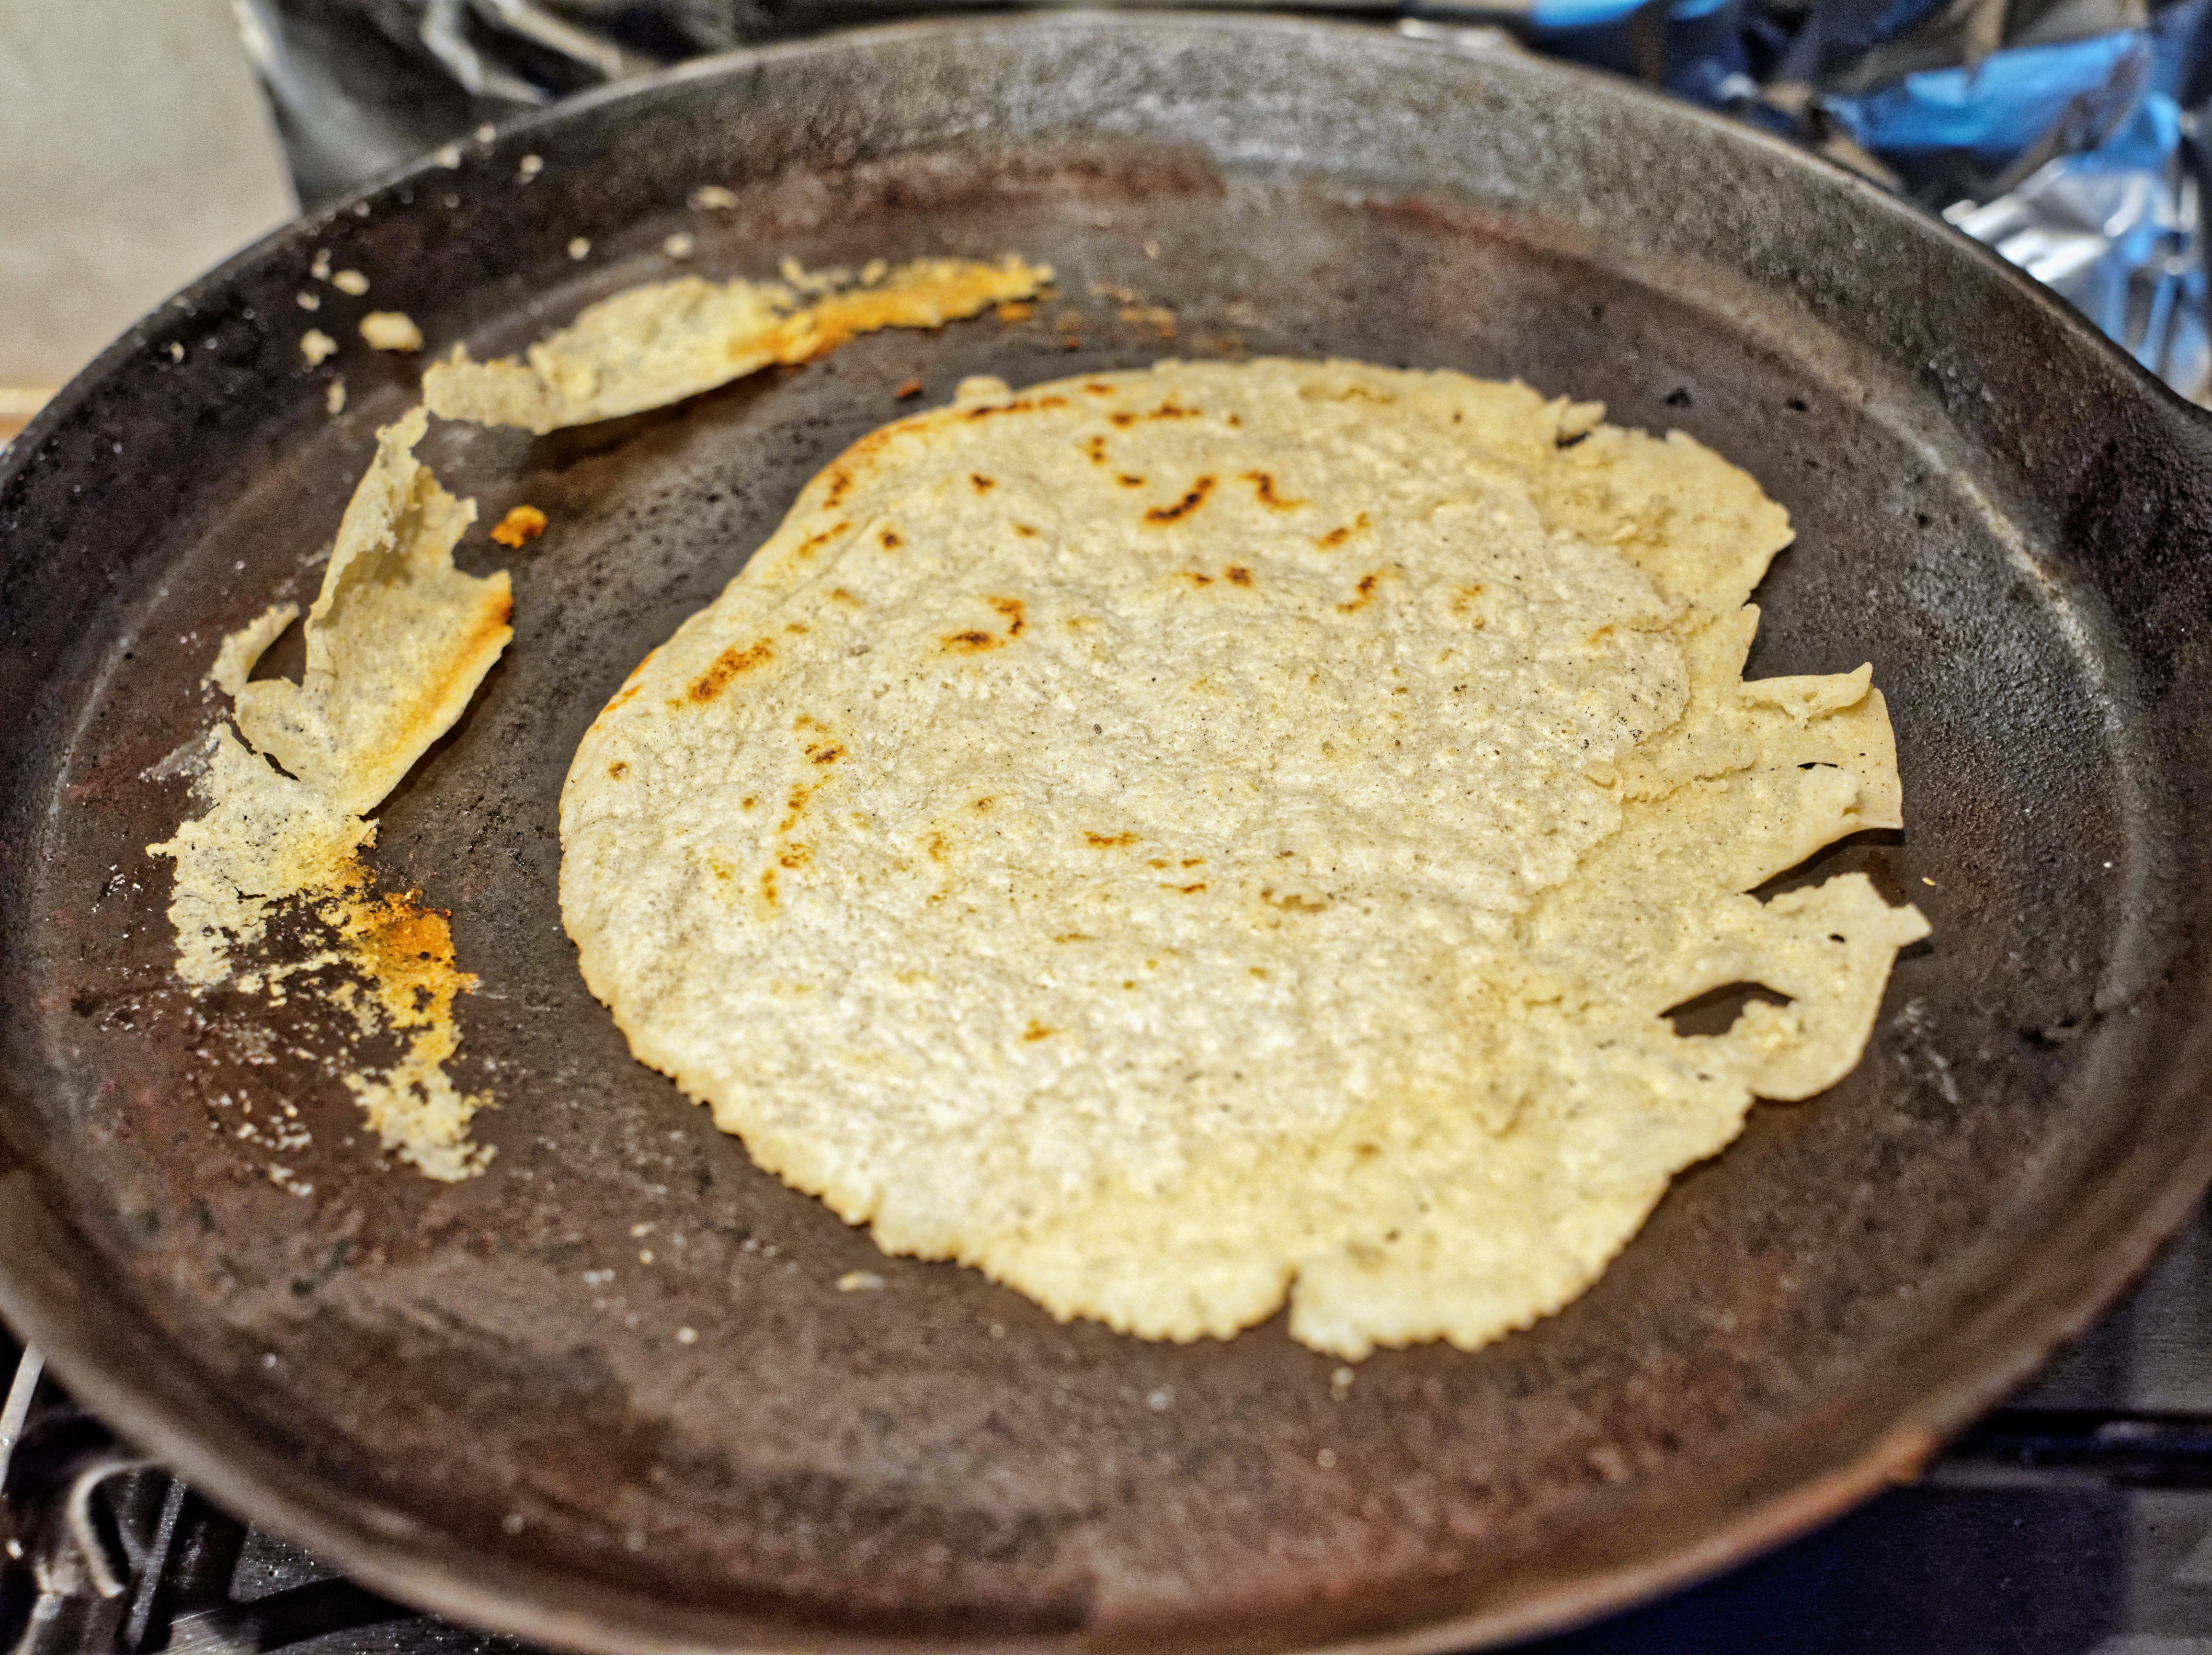 Induced-tortilla.jpeg